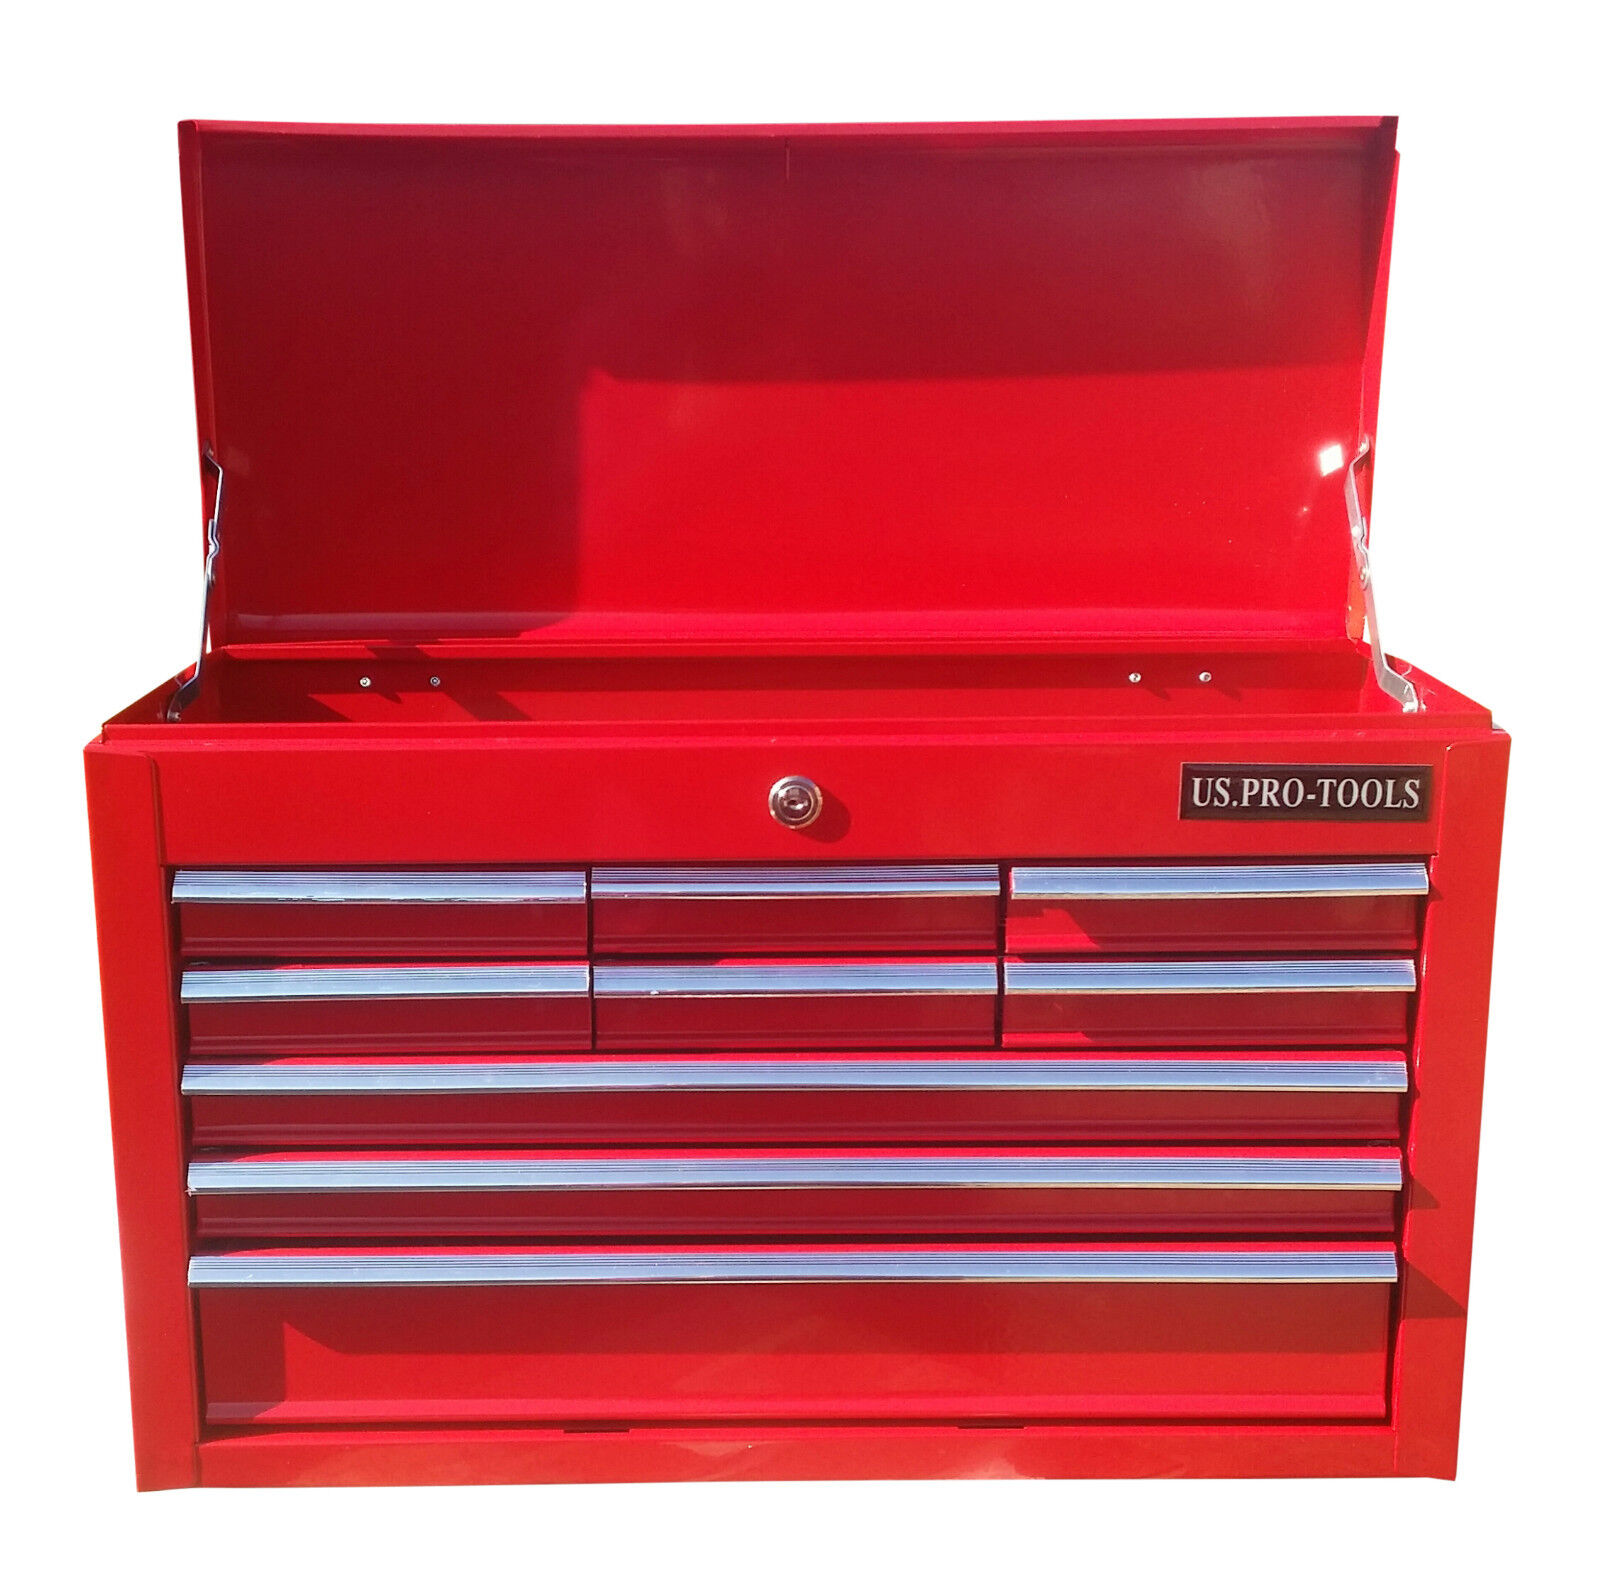 250 US PRO TOOLS AFFORDABLE TOOL STORAGE CHEST BOX TOOL